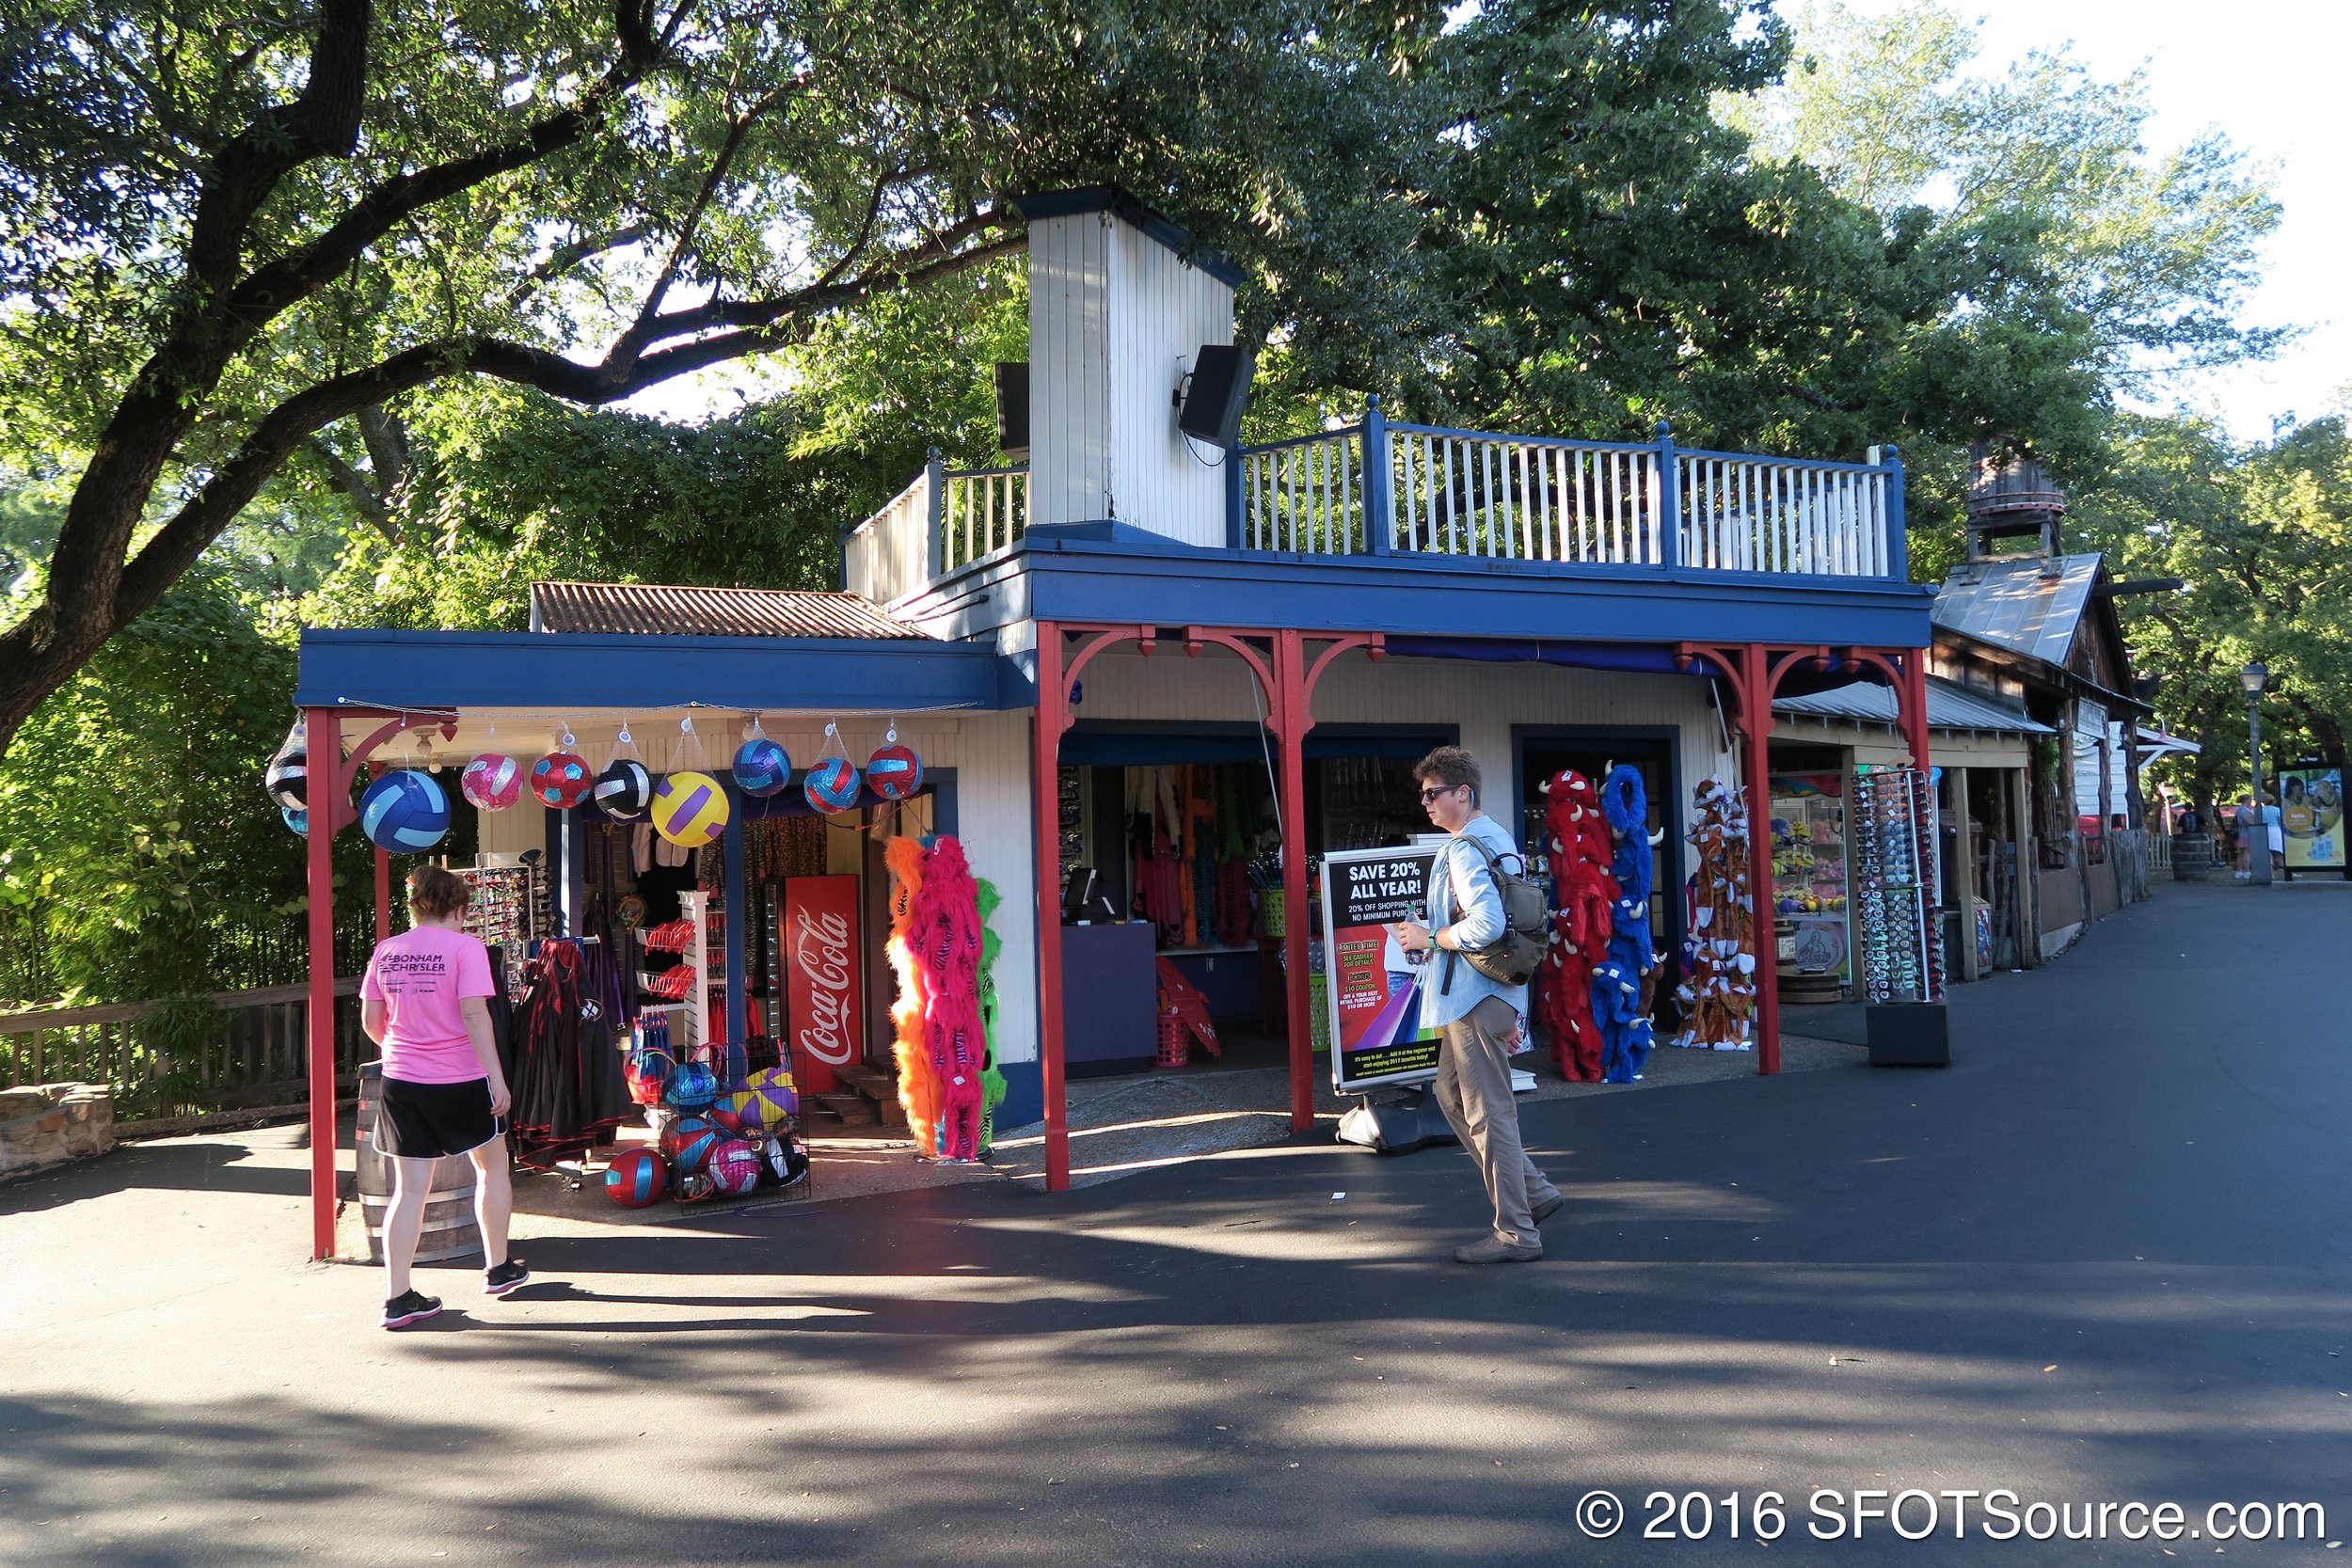 Texas Hats is an outdoor gift shop.